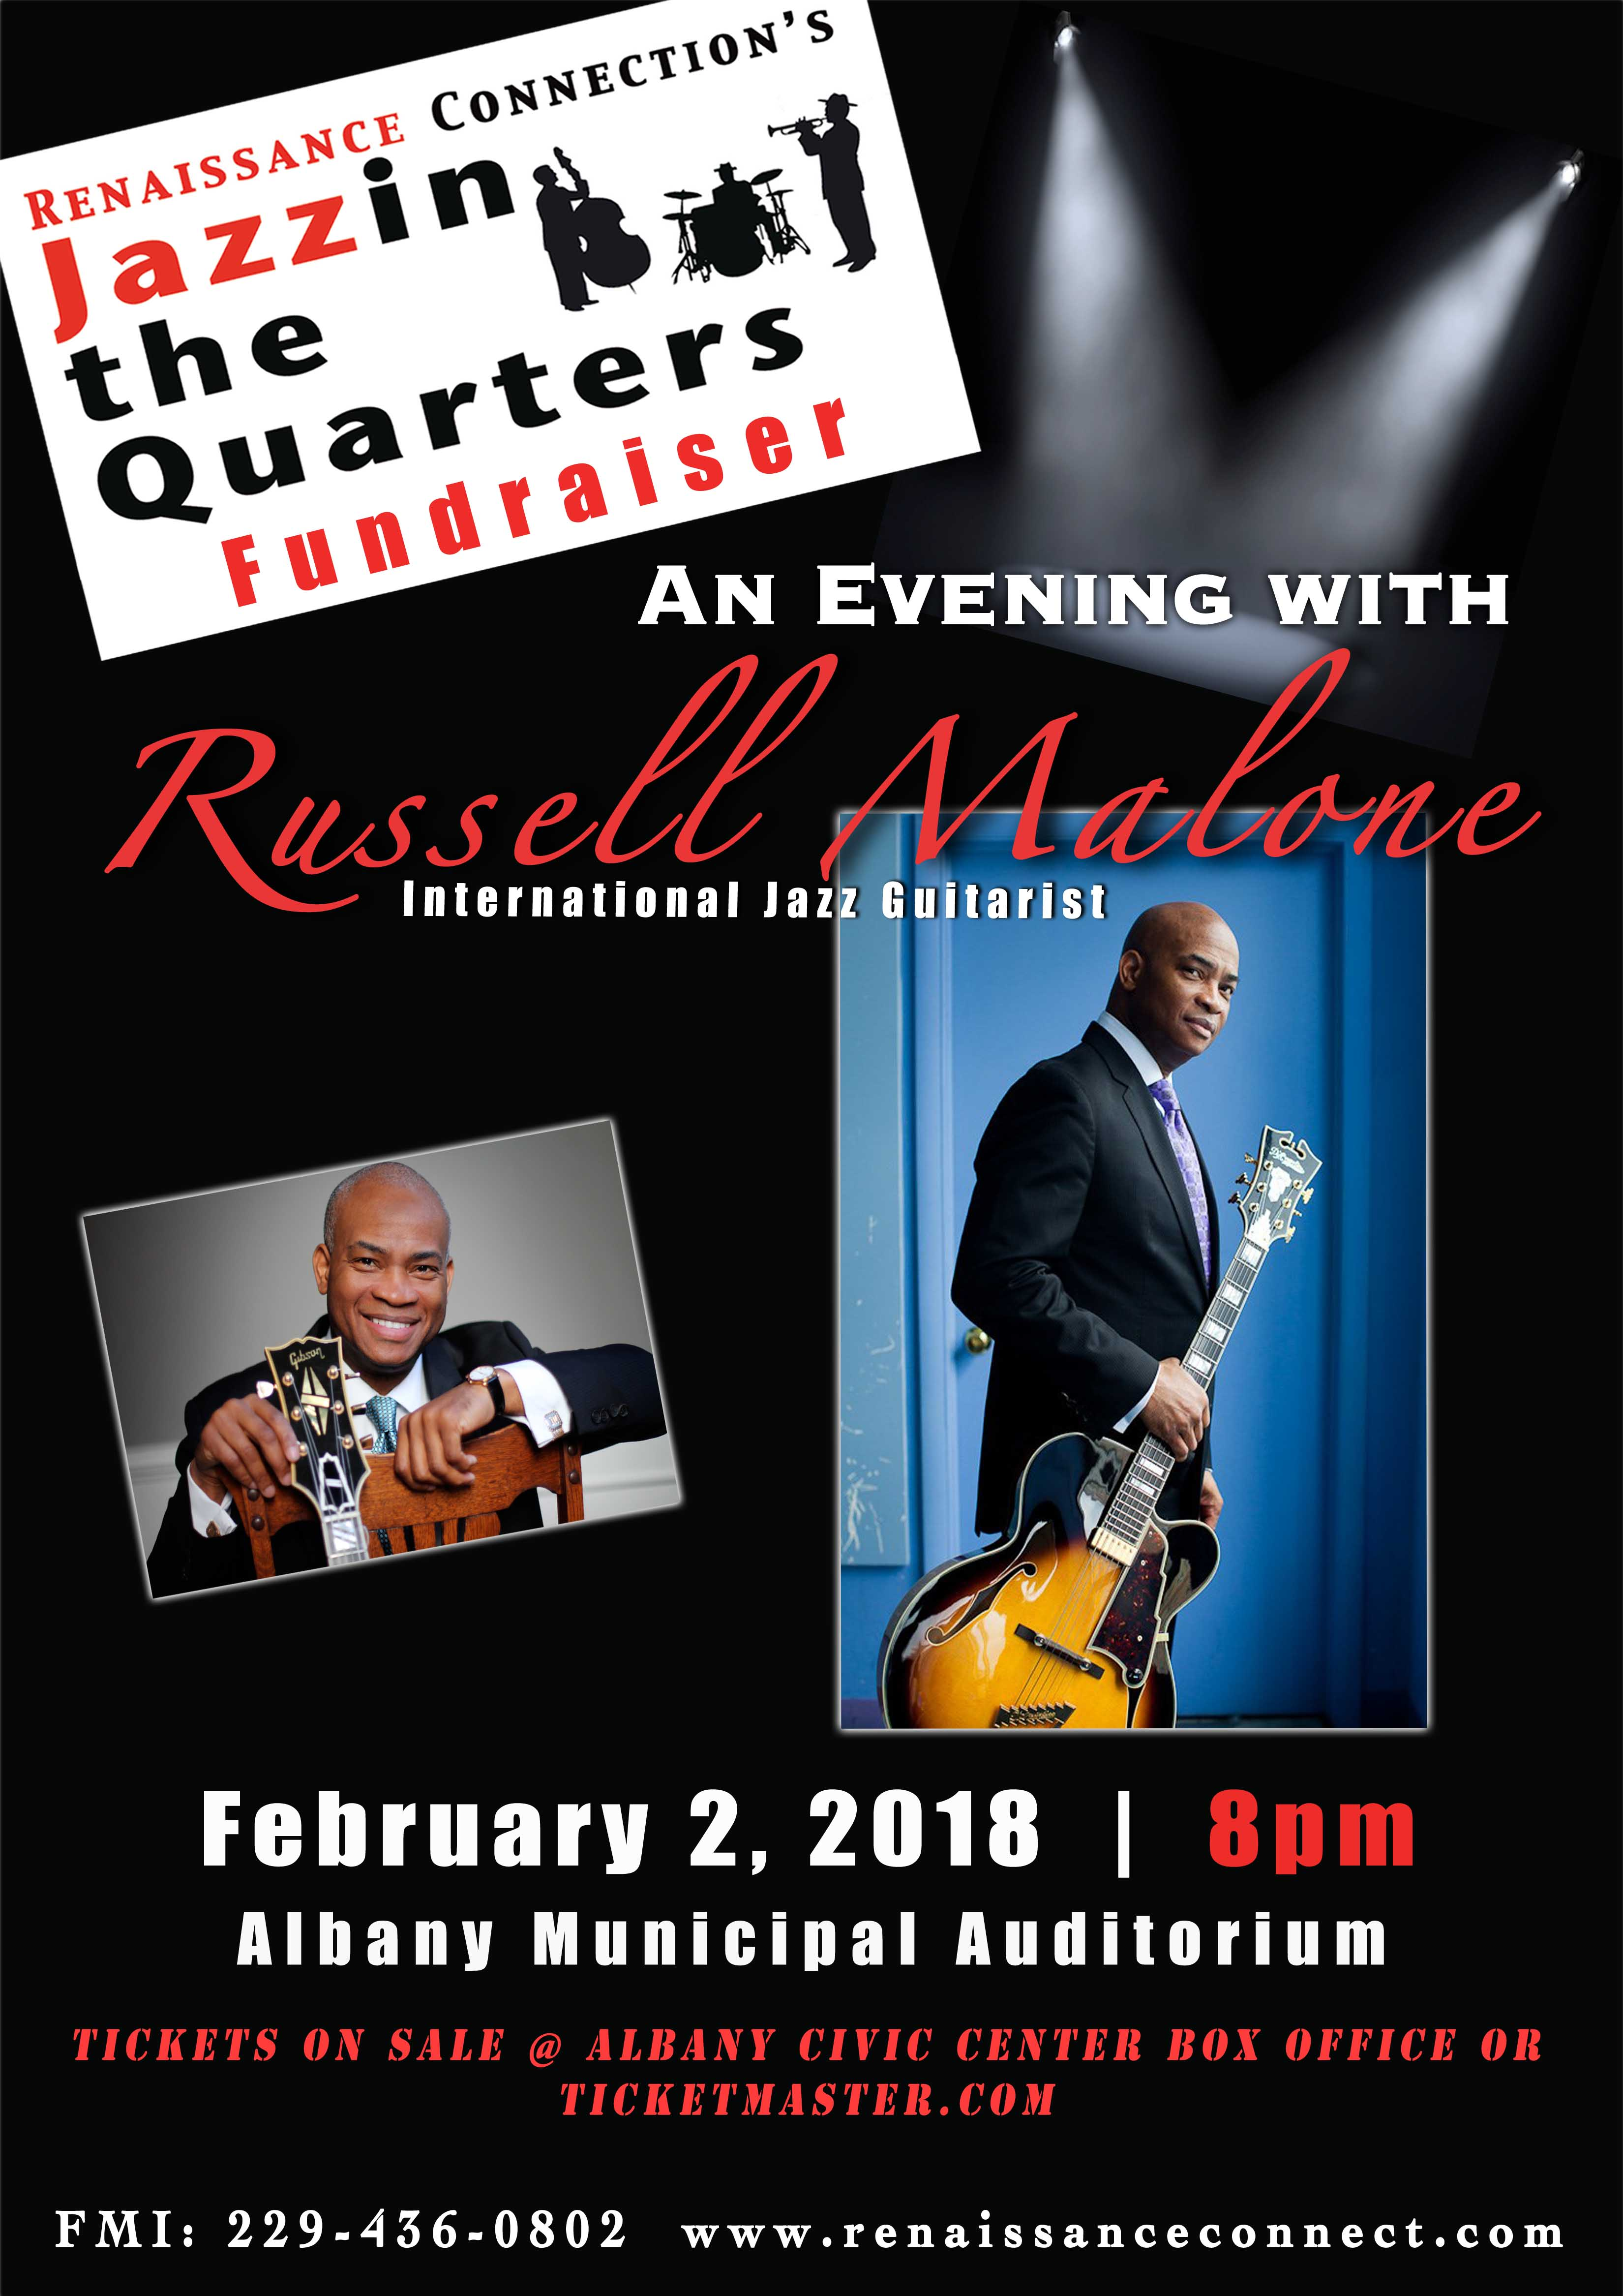 Renaissance Connection's Jazzin the Quarters: An Evening with Russell Malone